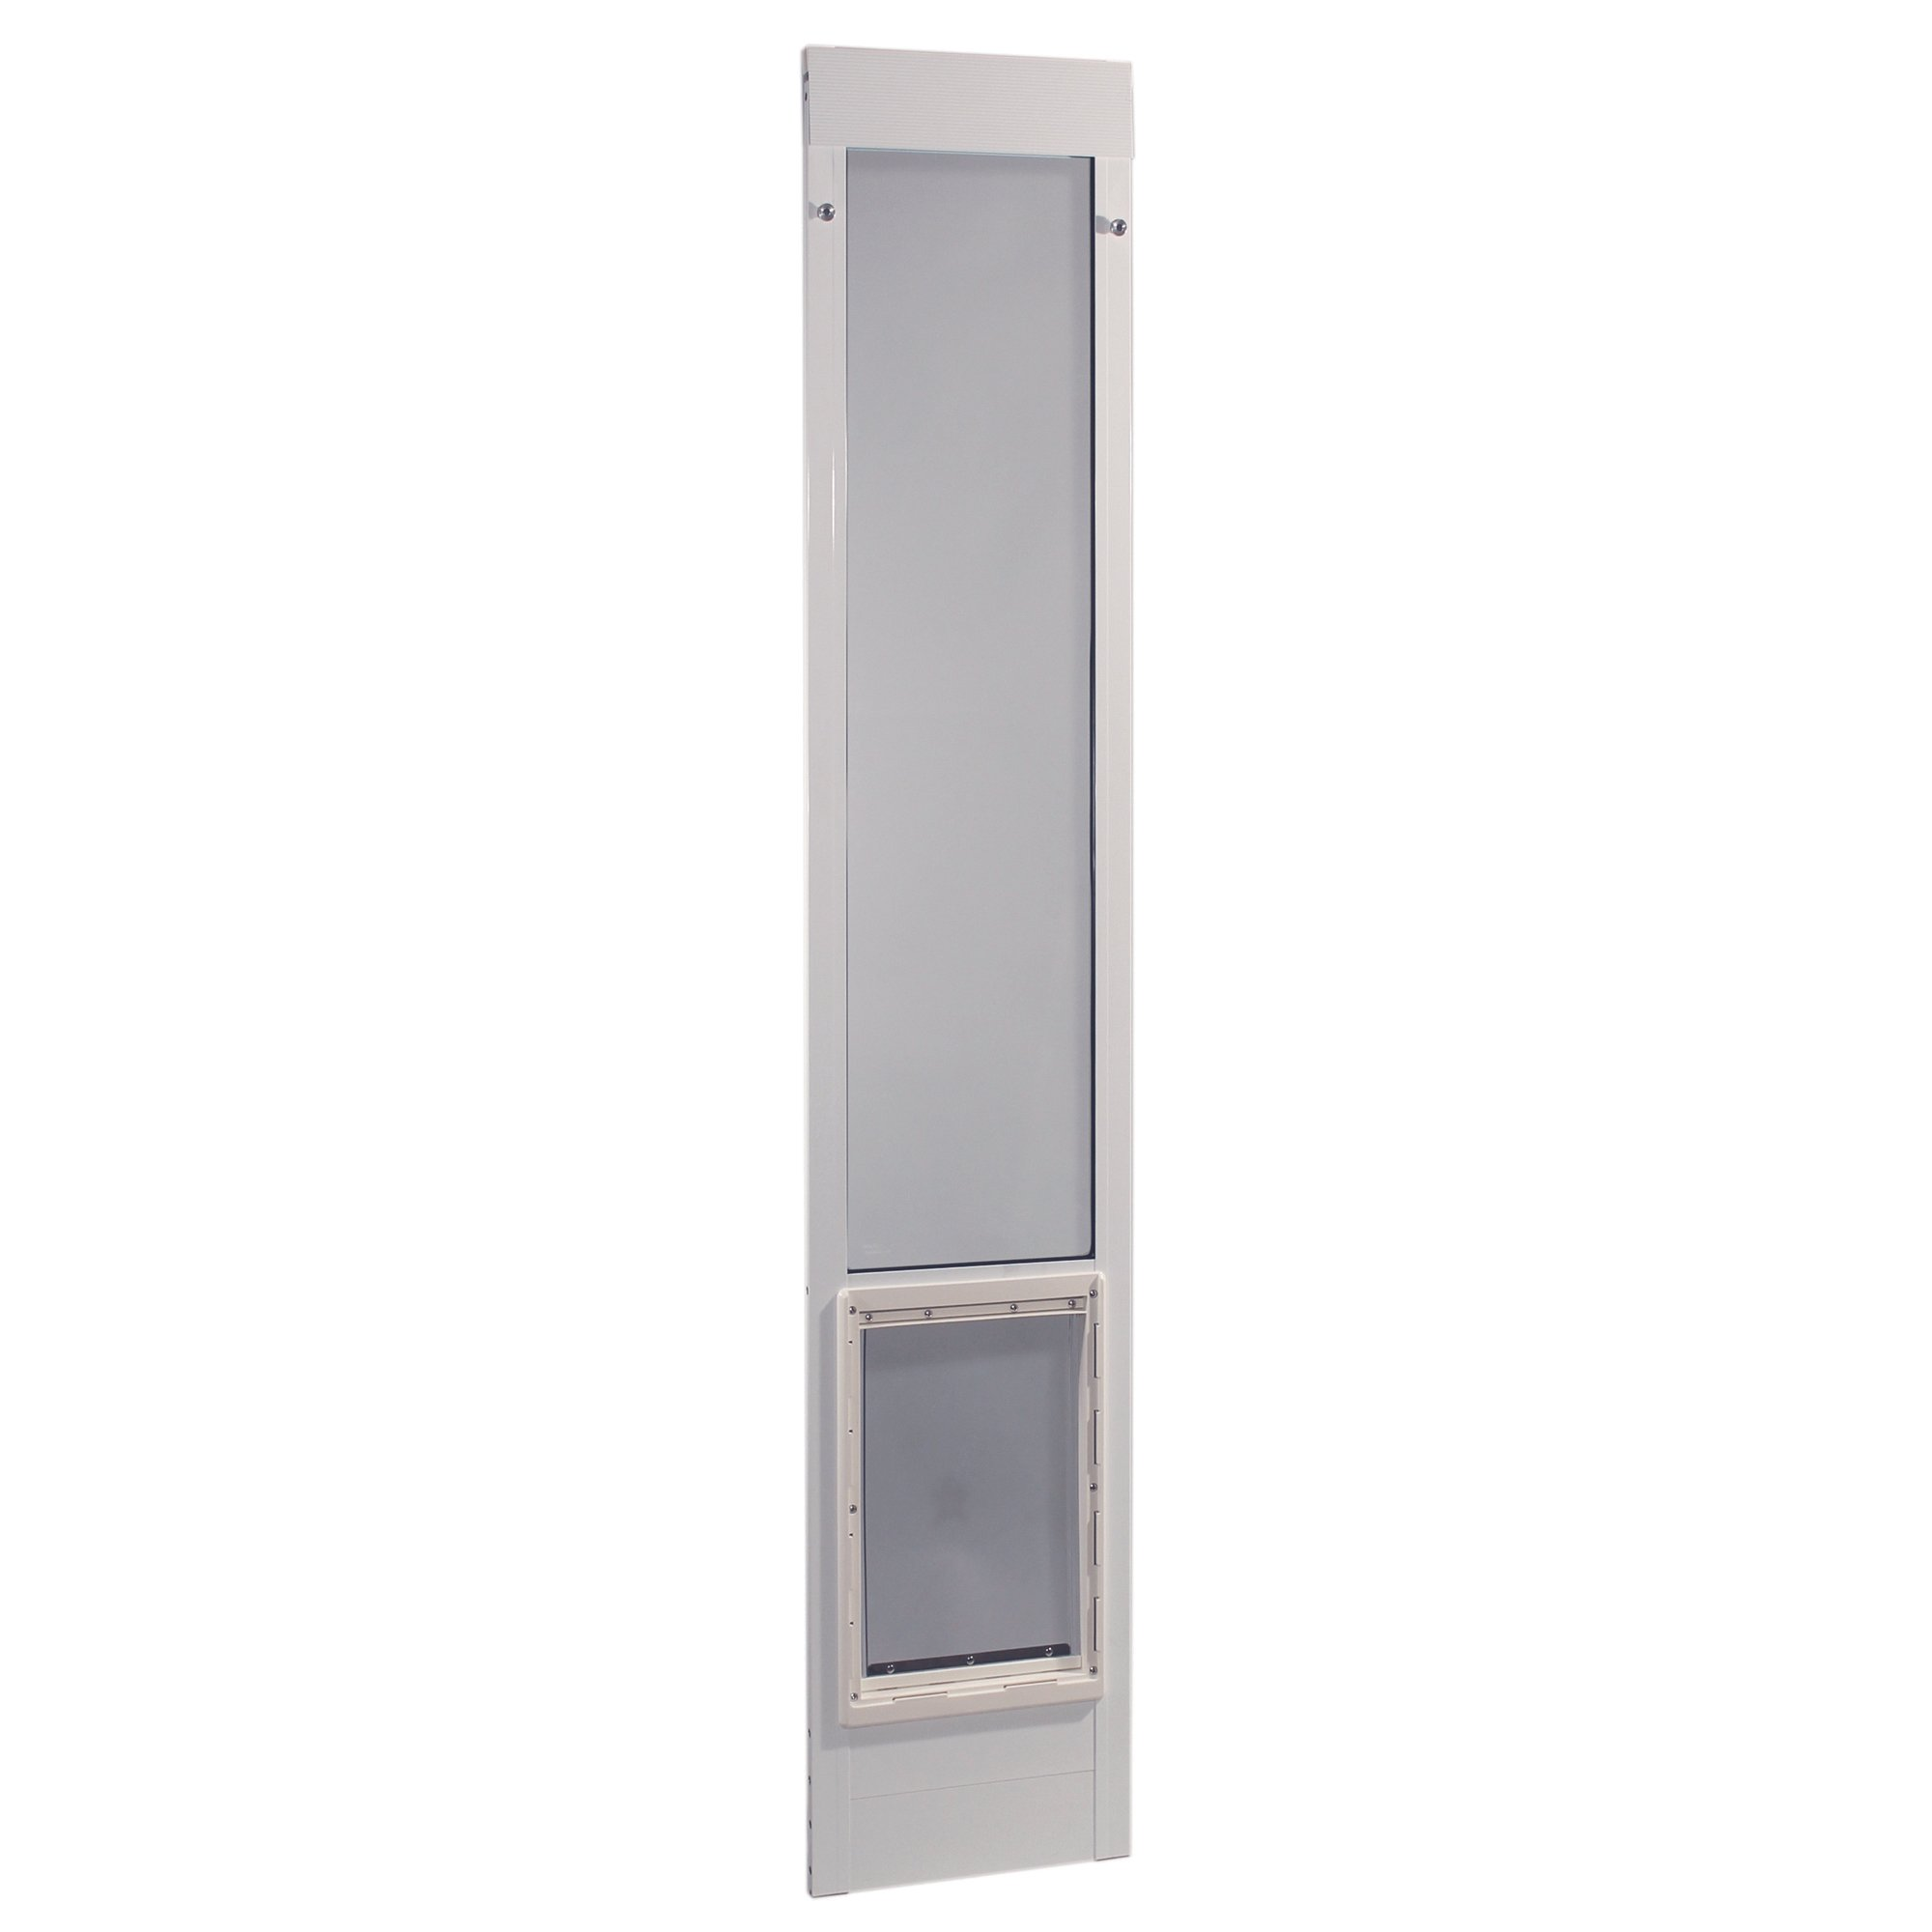 Fast Fit Pet Patio Door 80'' Super Large (White) by Ideal Pet Products